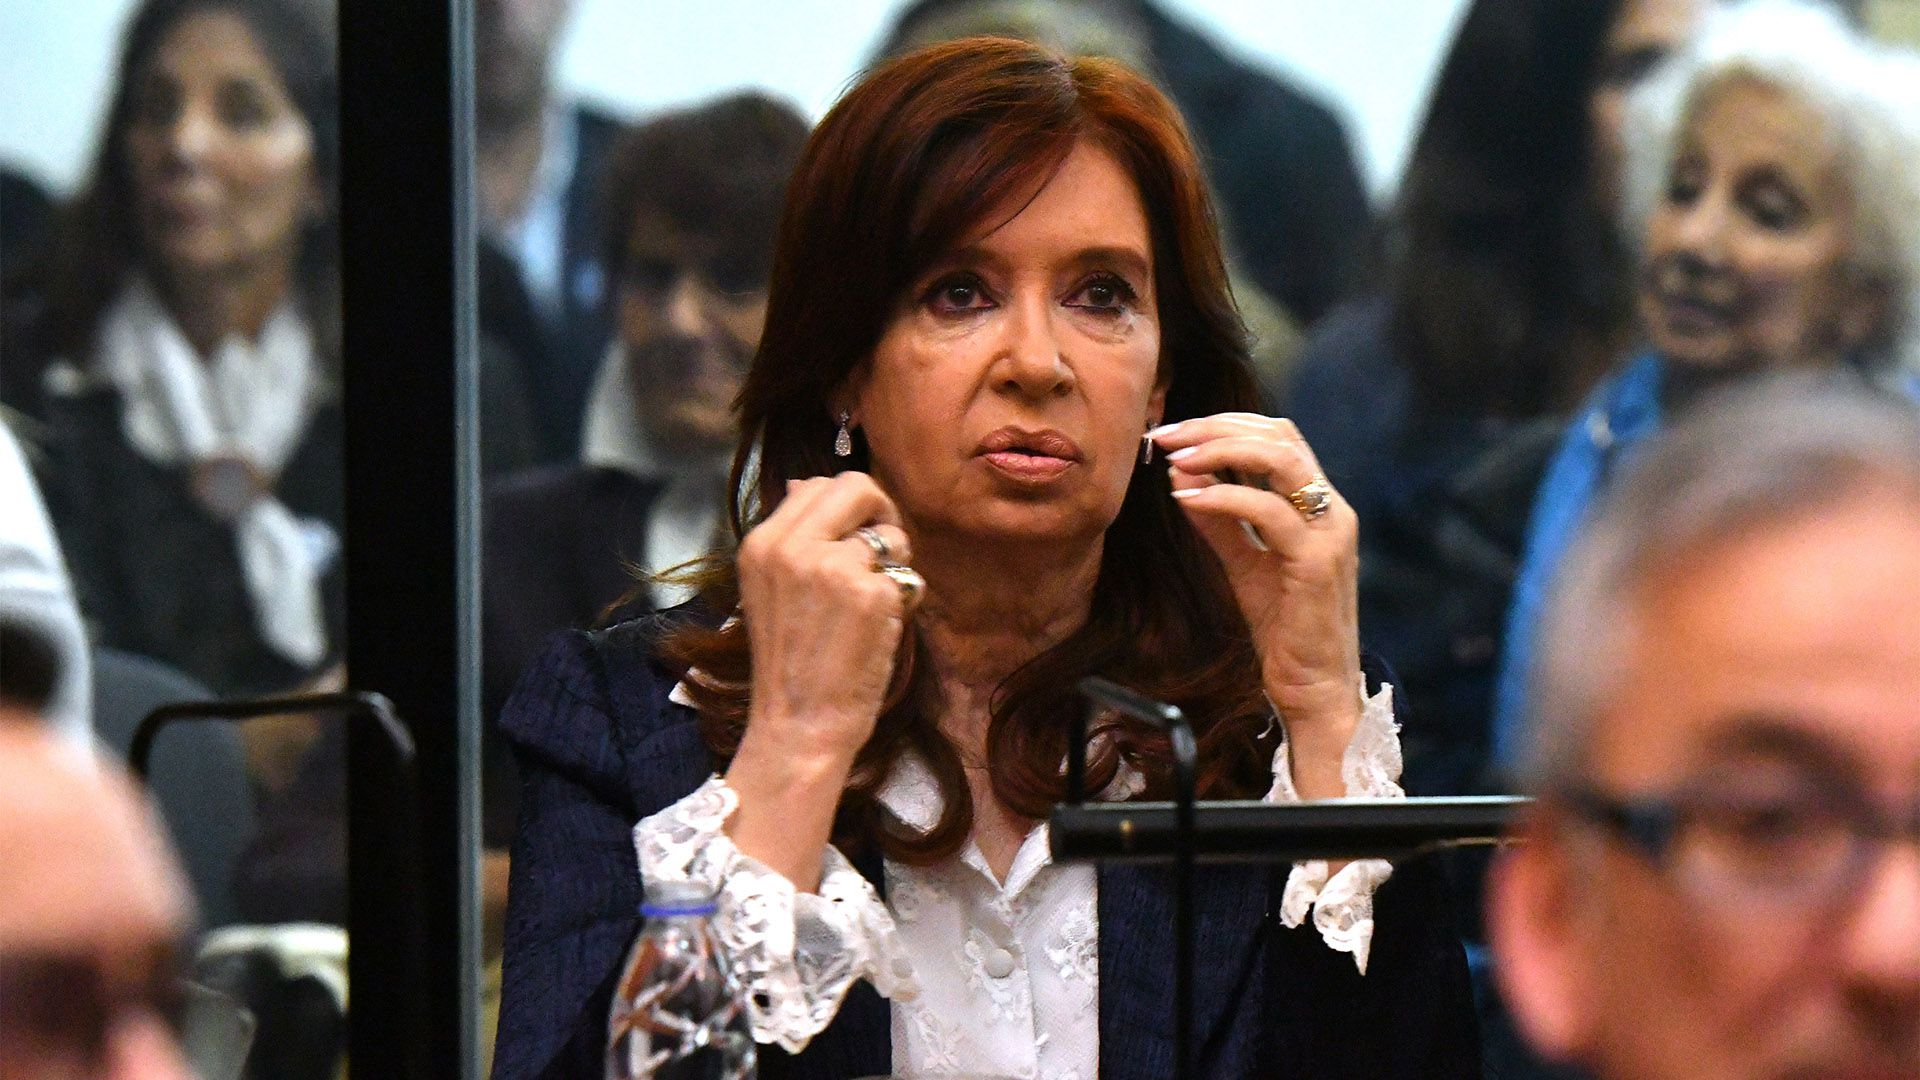 Cistina Kirchner en la primera audiencia del juicio oral  (Photo by JUAN MABROMATA / AFP)